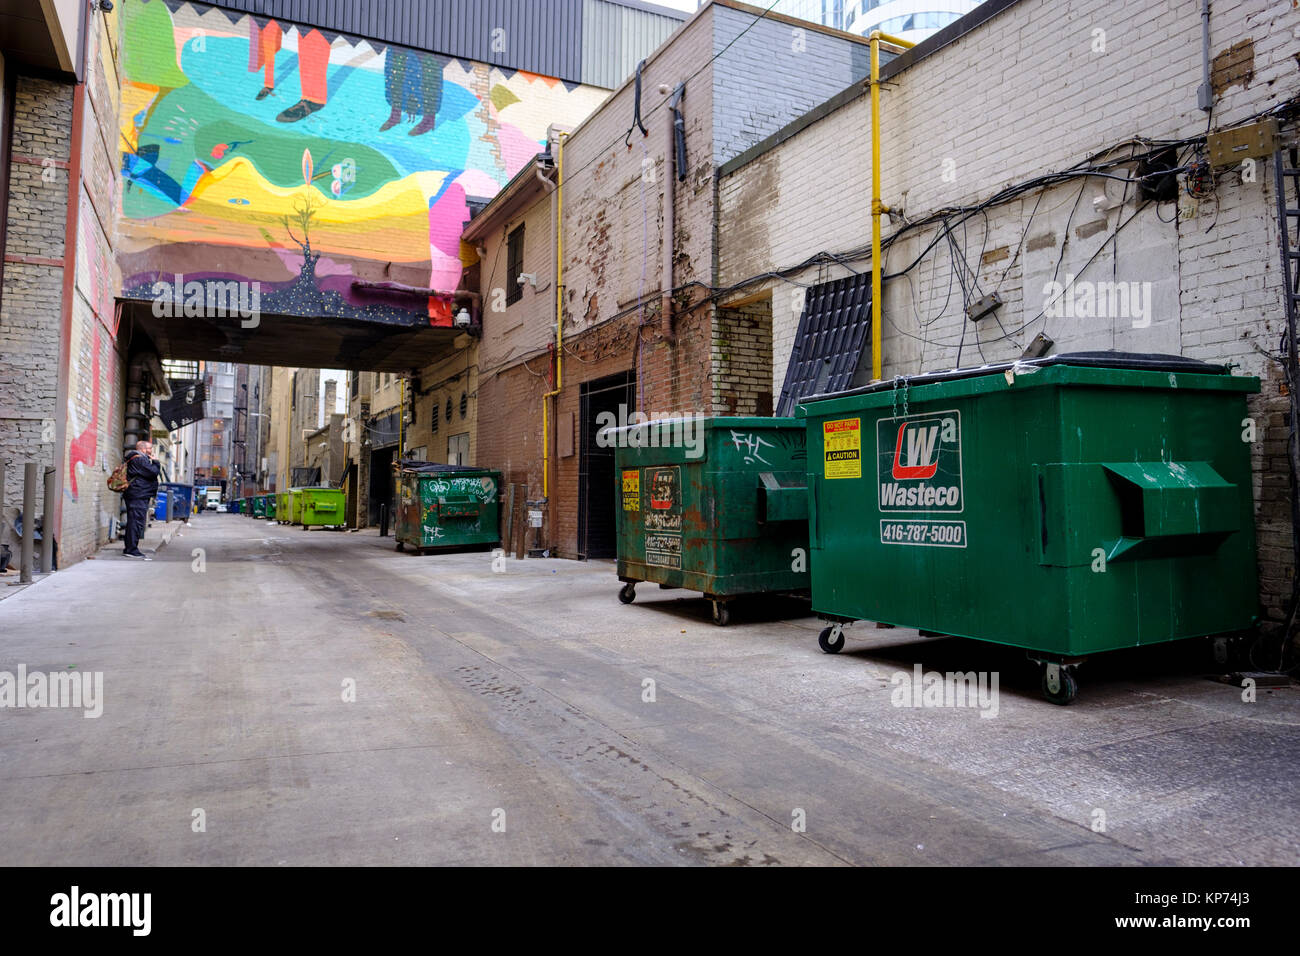 O'Keefe Lane alleyway with many green garbage dumpsters lined up against the wall, man smoking, graffiti art - Stock Image